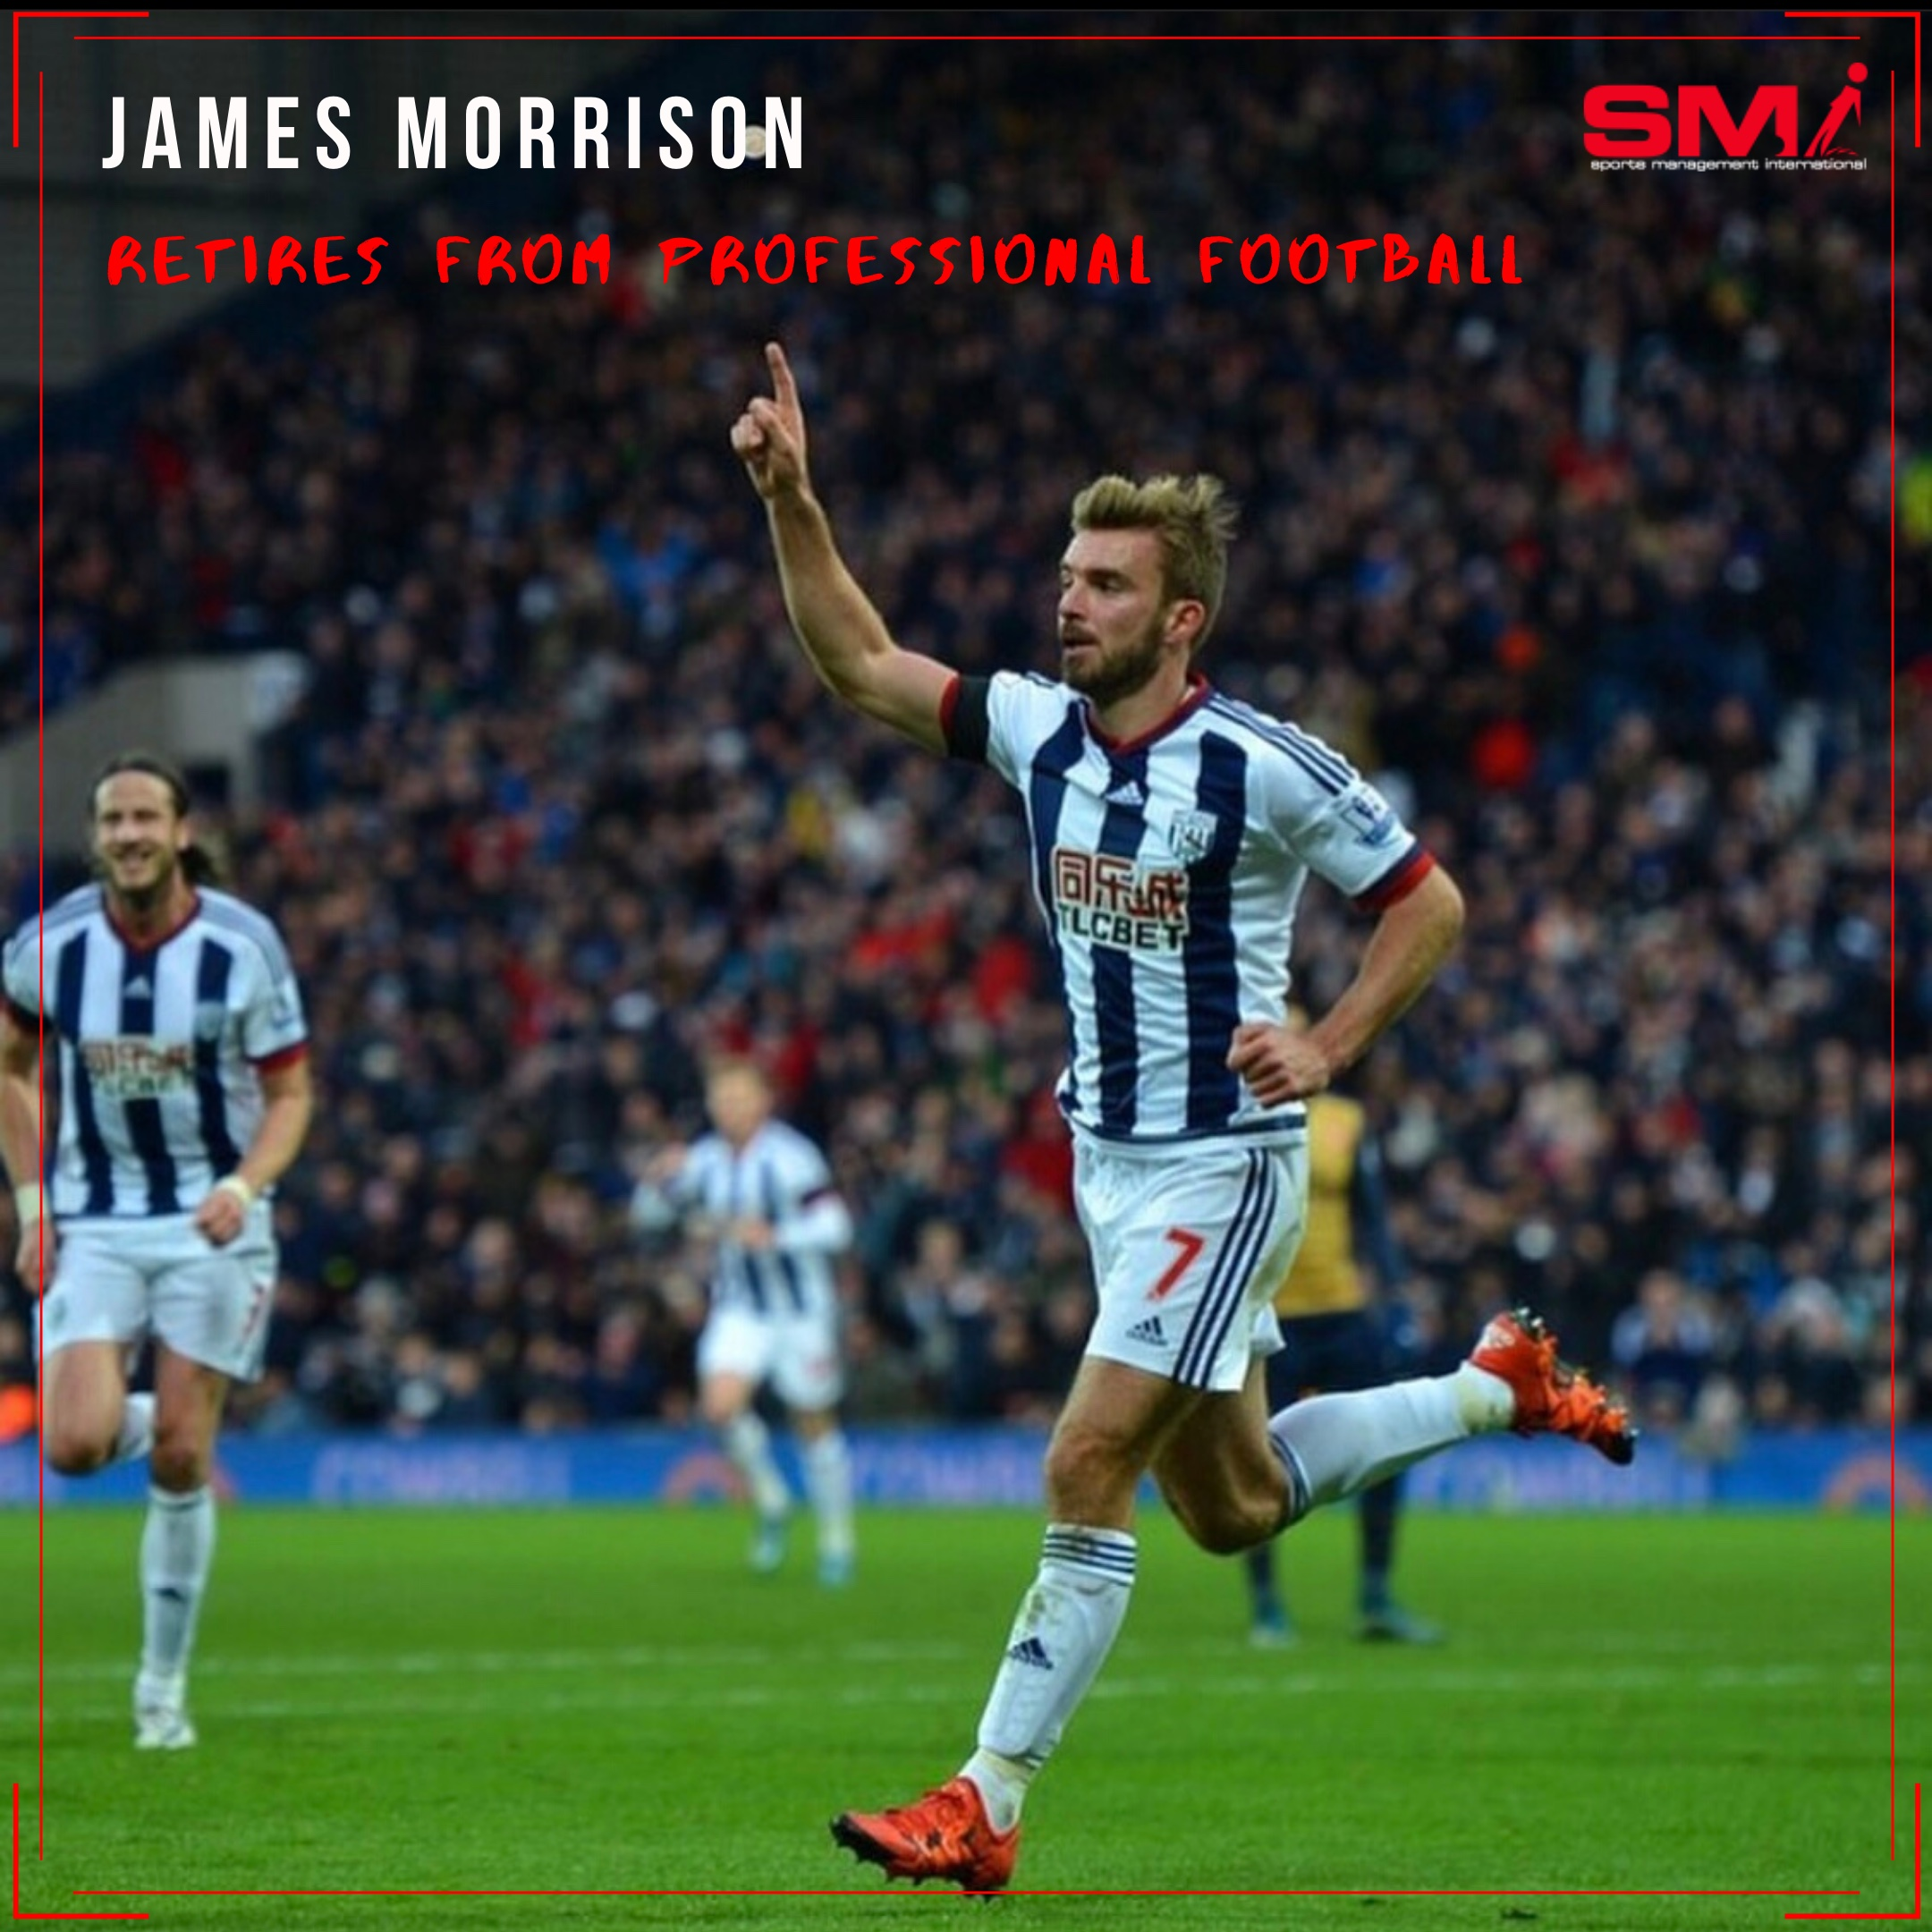 James Morrison retires from professional football